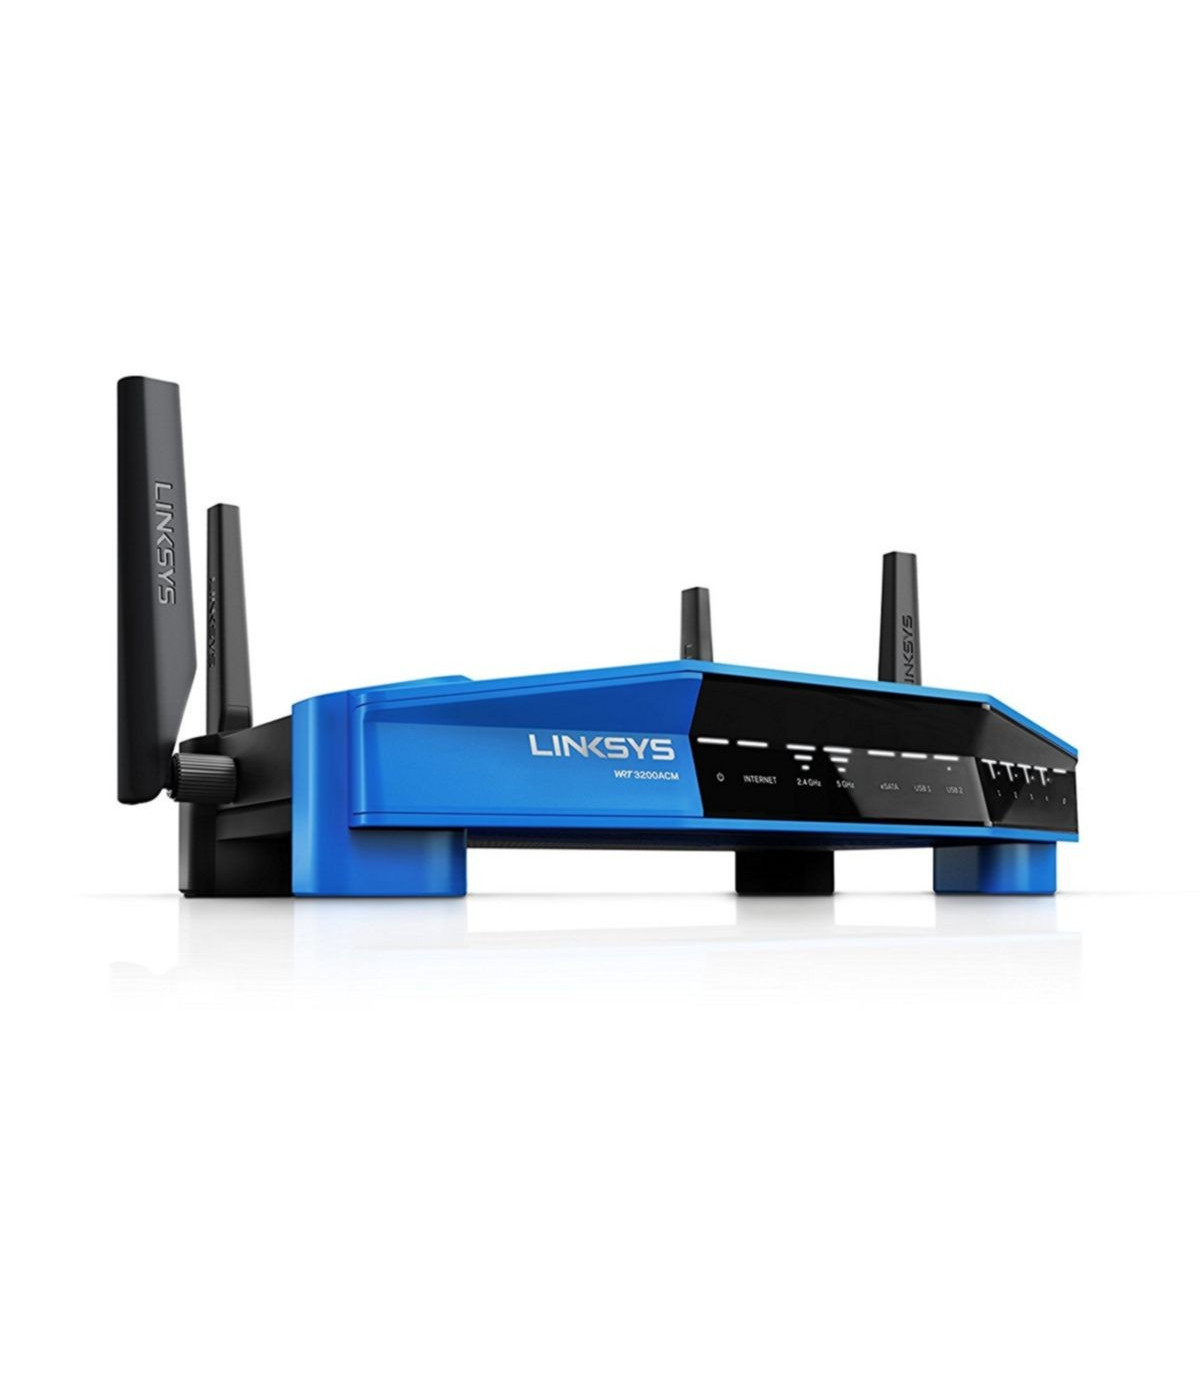 ROUTER LINKSYS WRT3200ACM